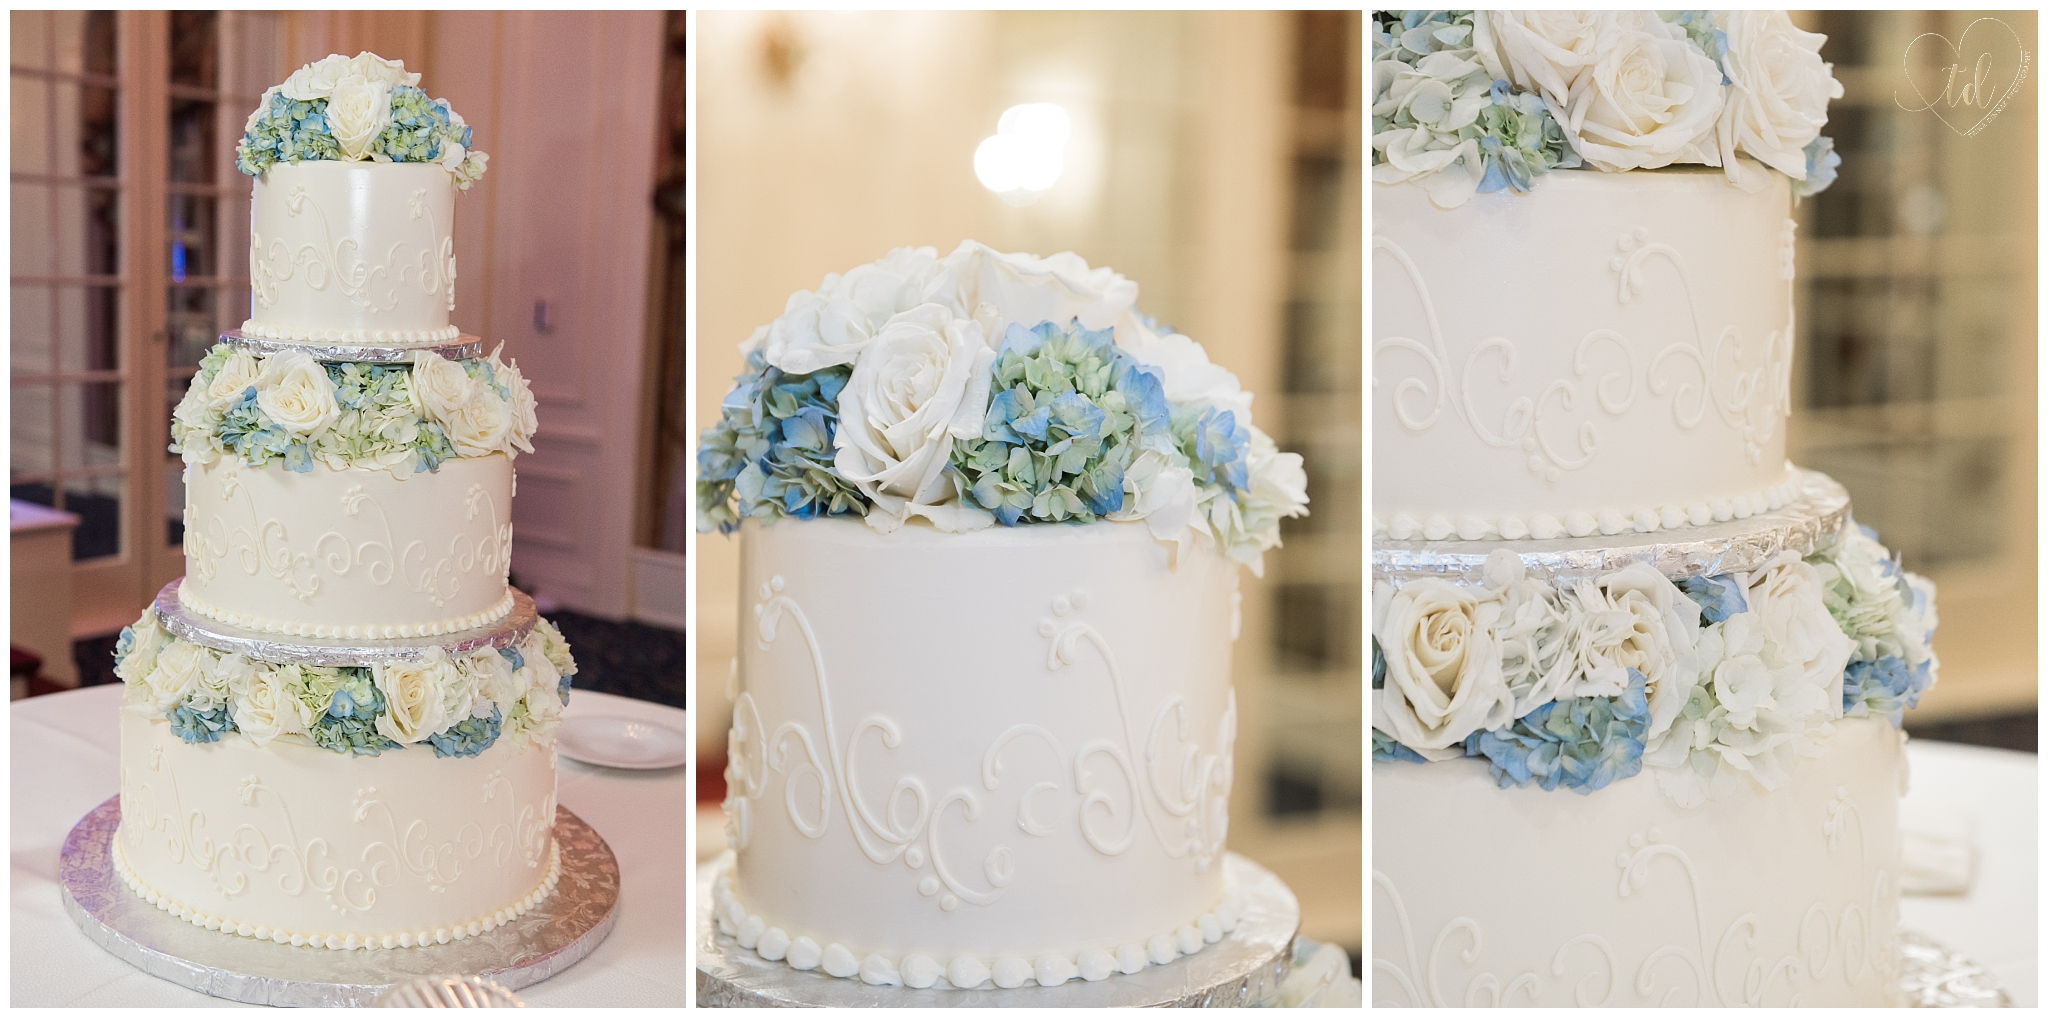 Jacques Pastries New Hampshire Wedding Cakes